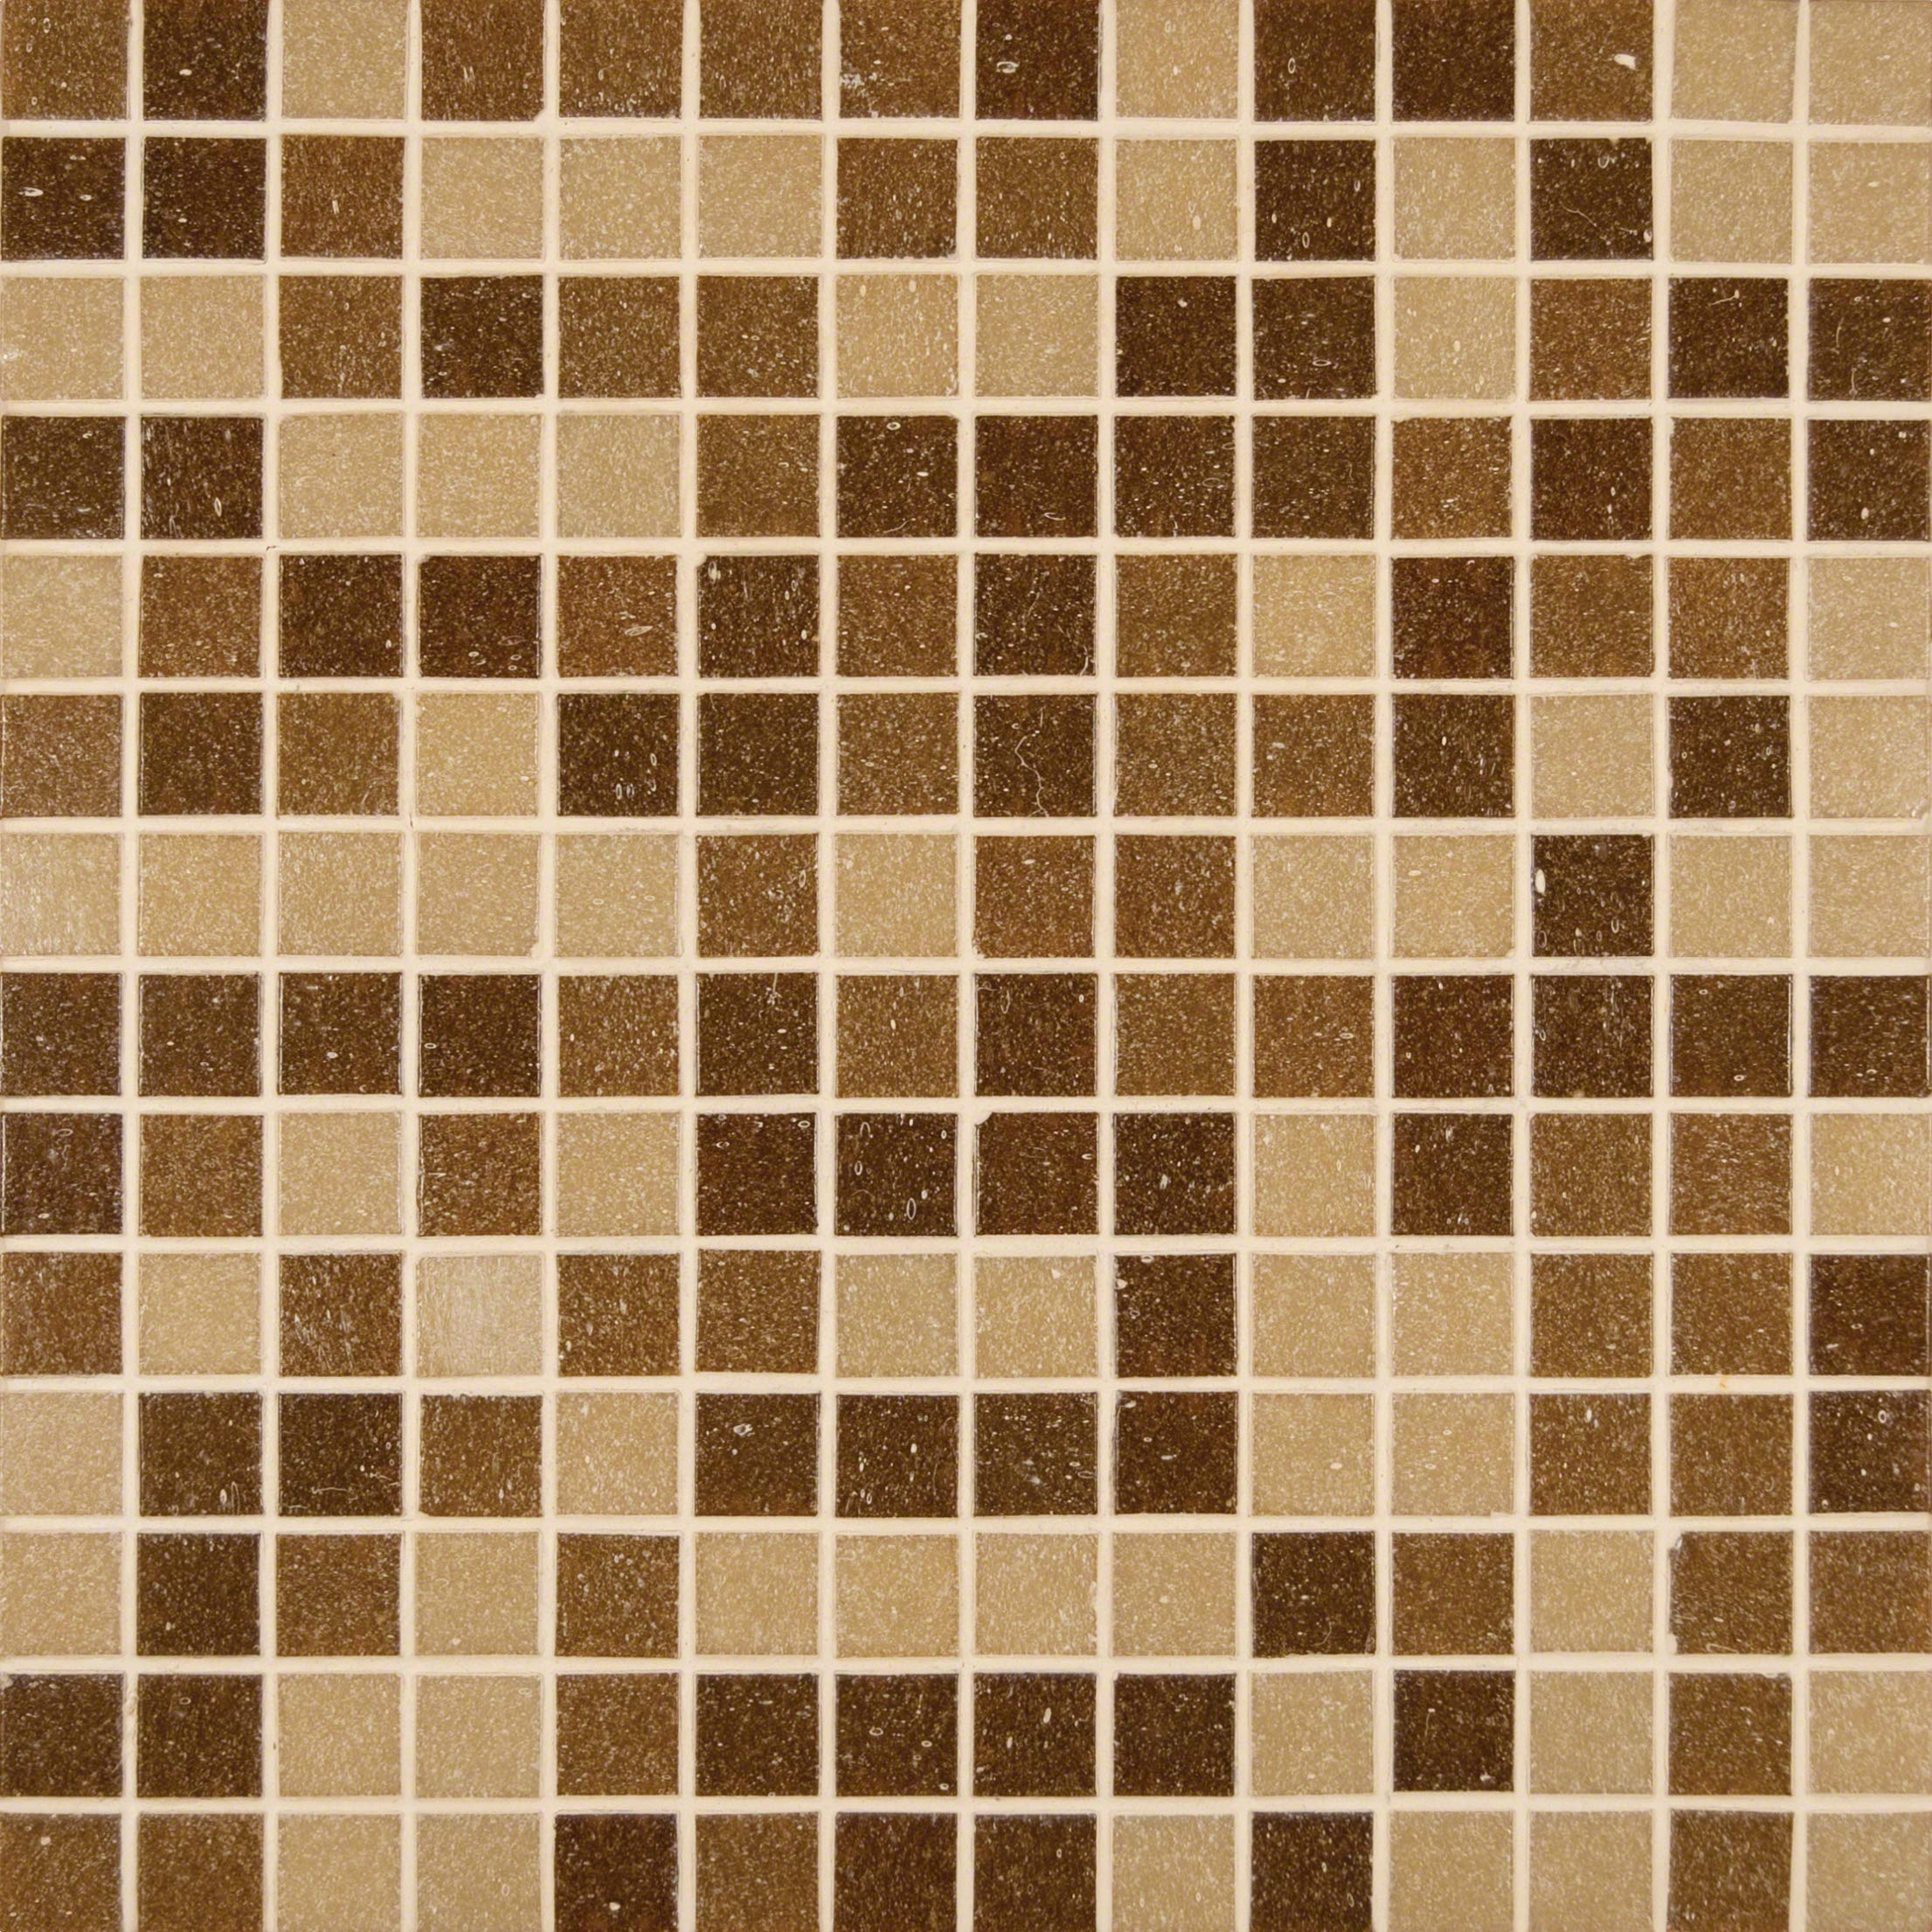 MS International AMZ-MD-00170 Canyon Vista Tile, 12 in. x 12 in, Tan, 20 Piece